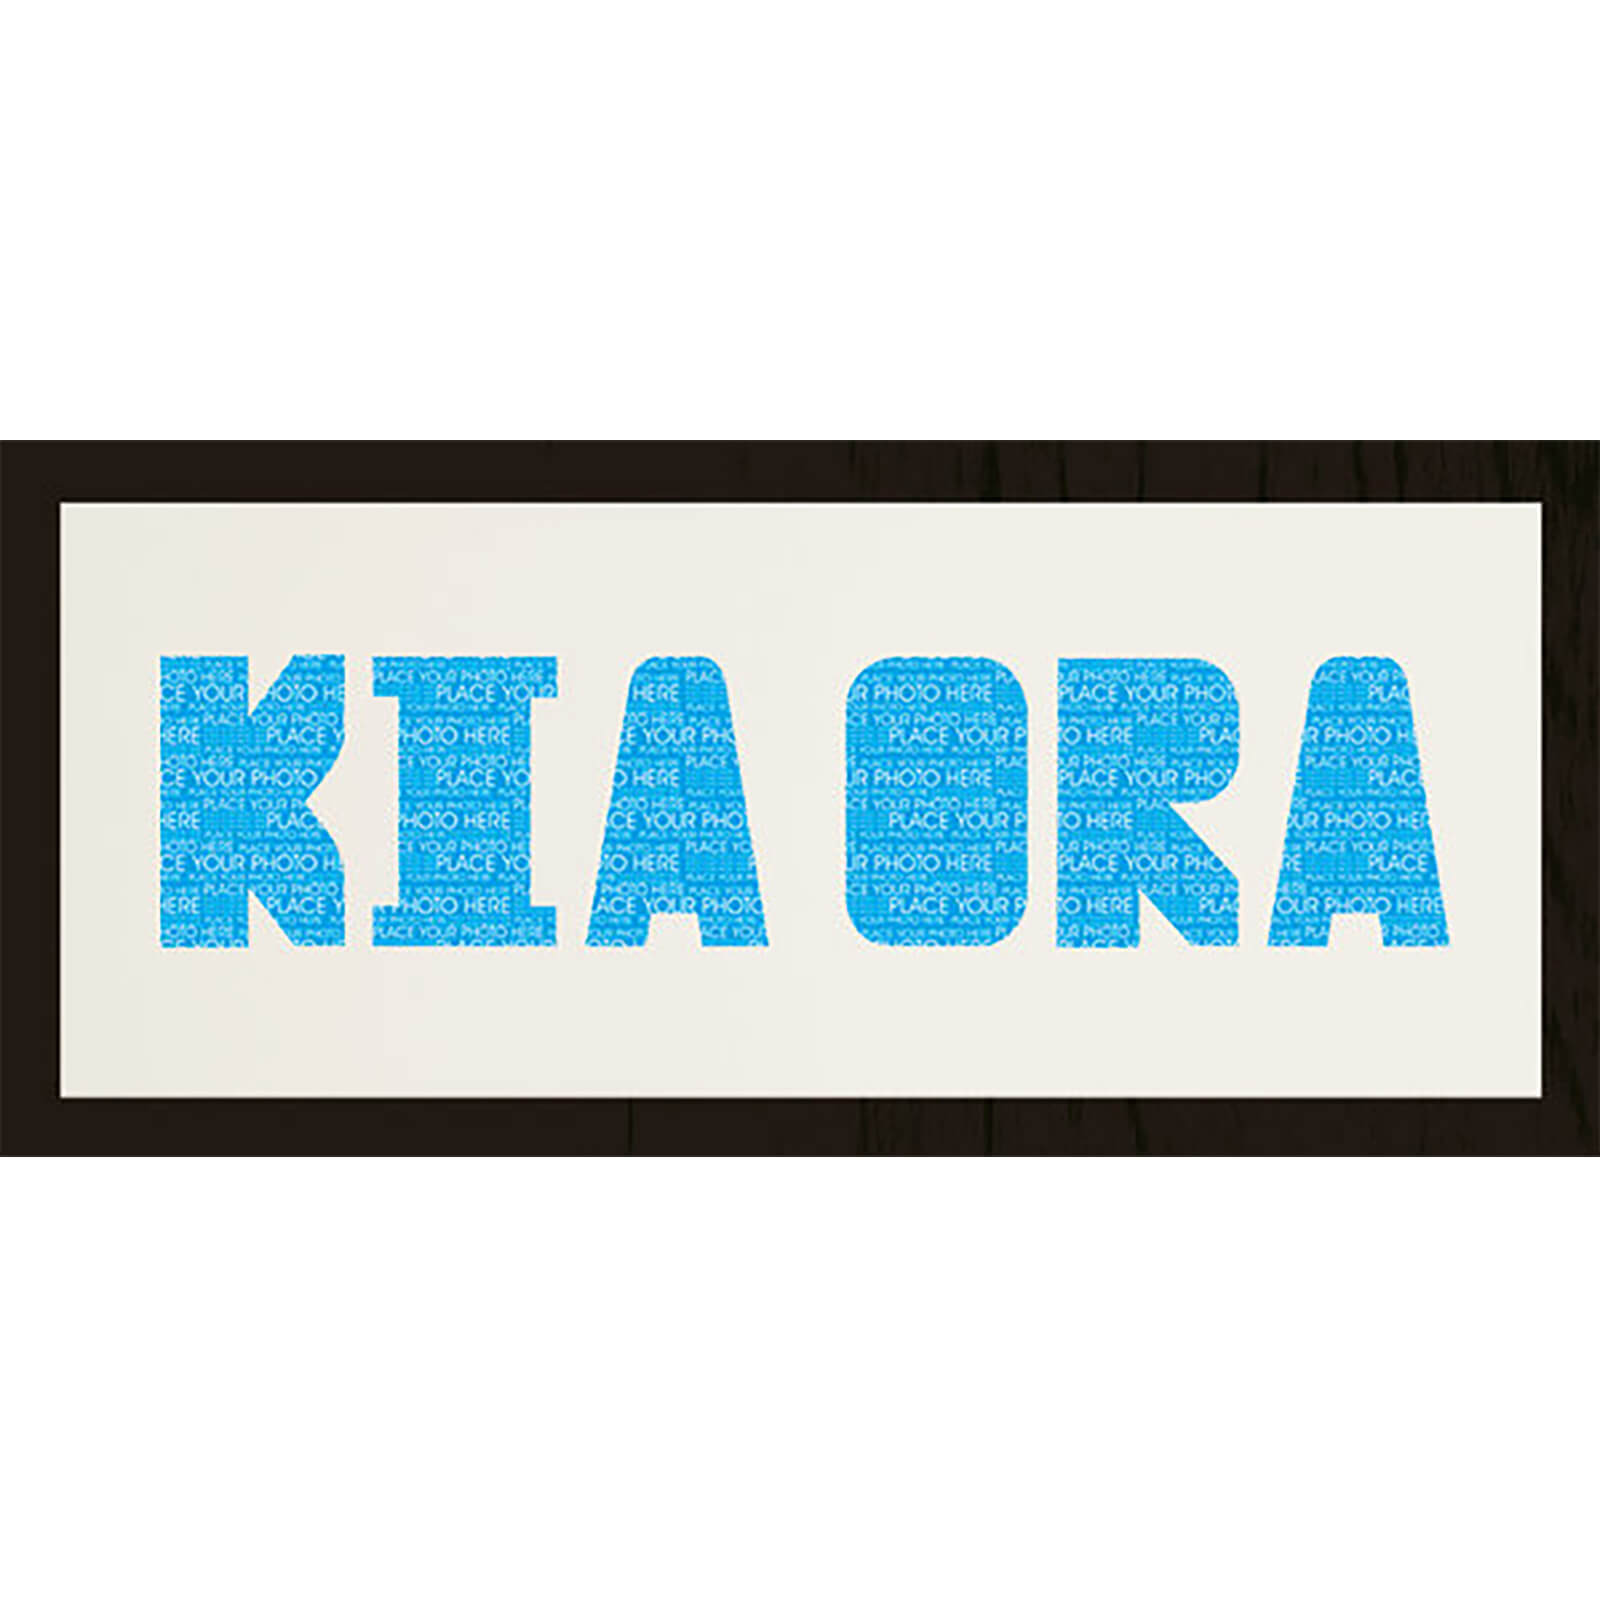 "GB Cream Mount Kia Ora Photo Font - Framed Mount - 12"""" x 30"""